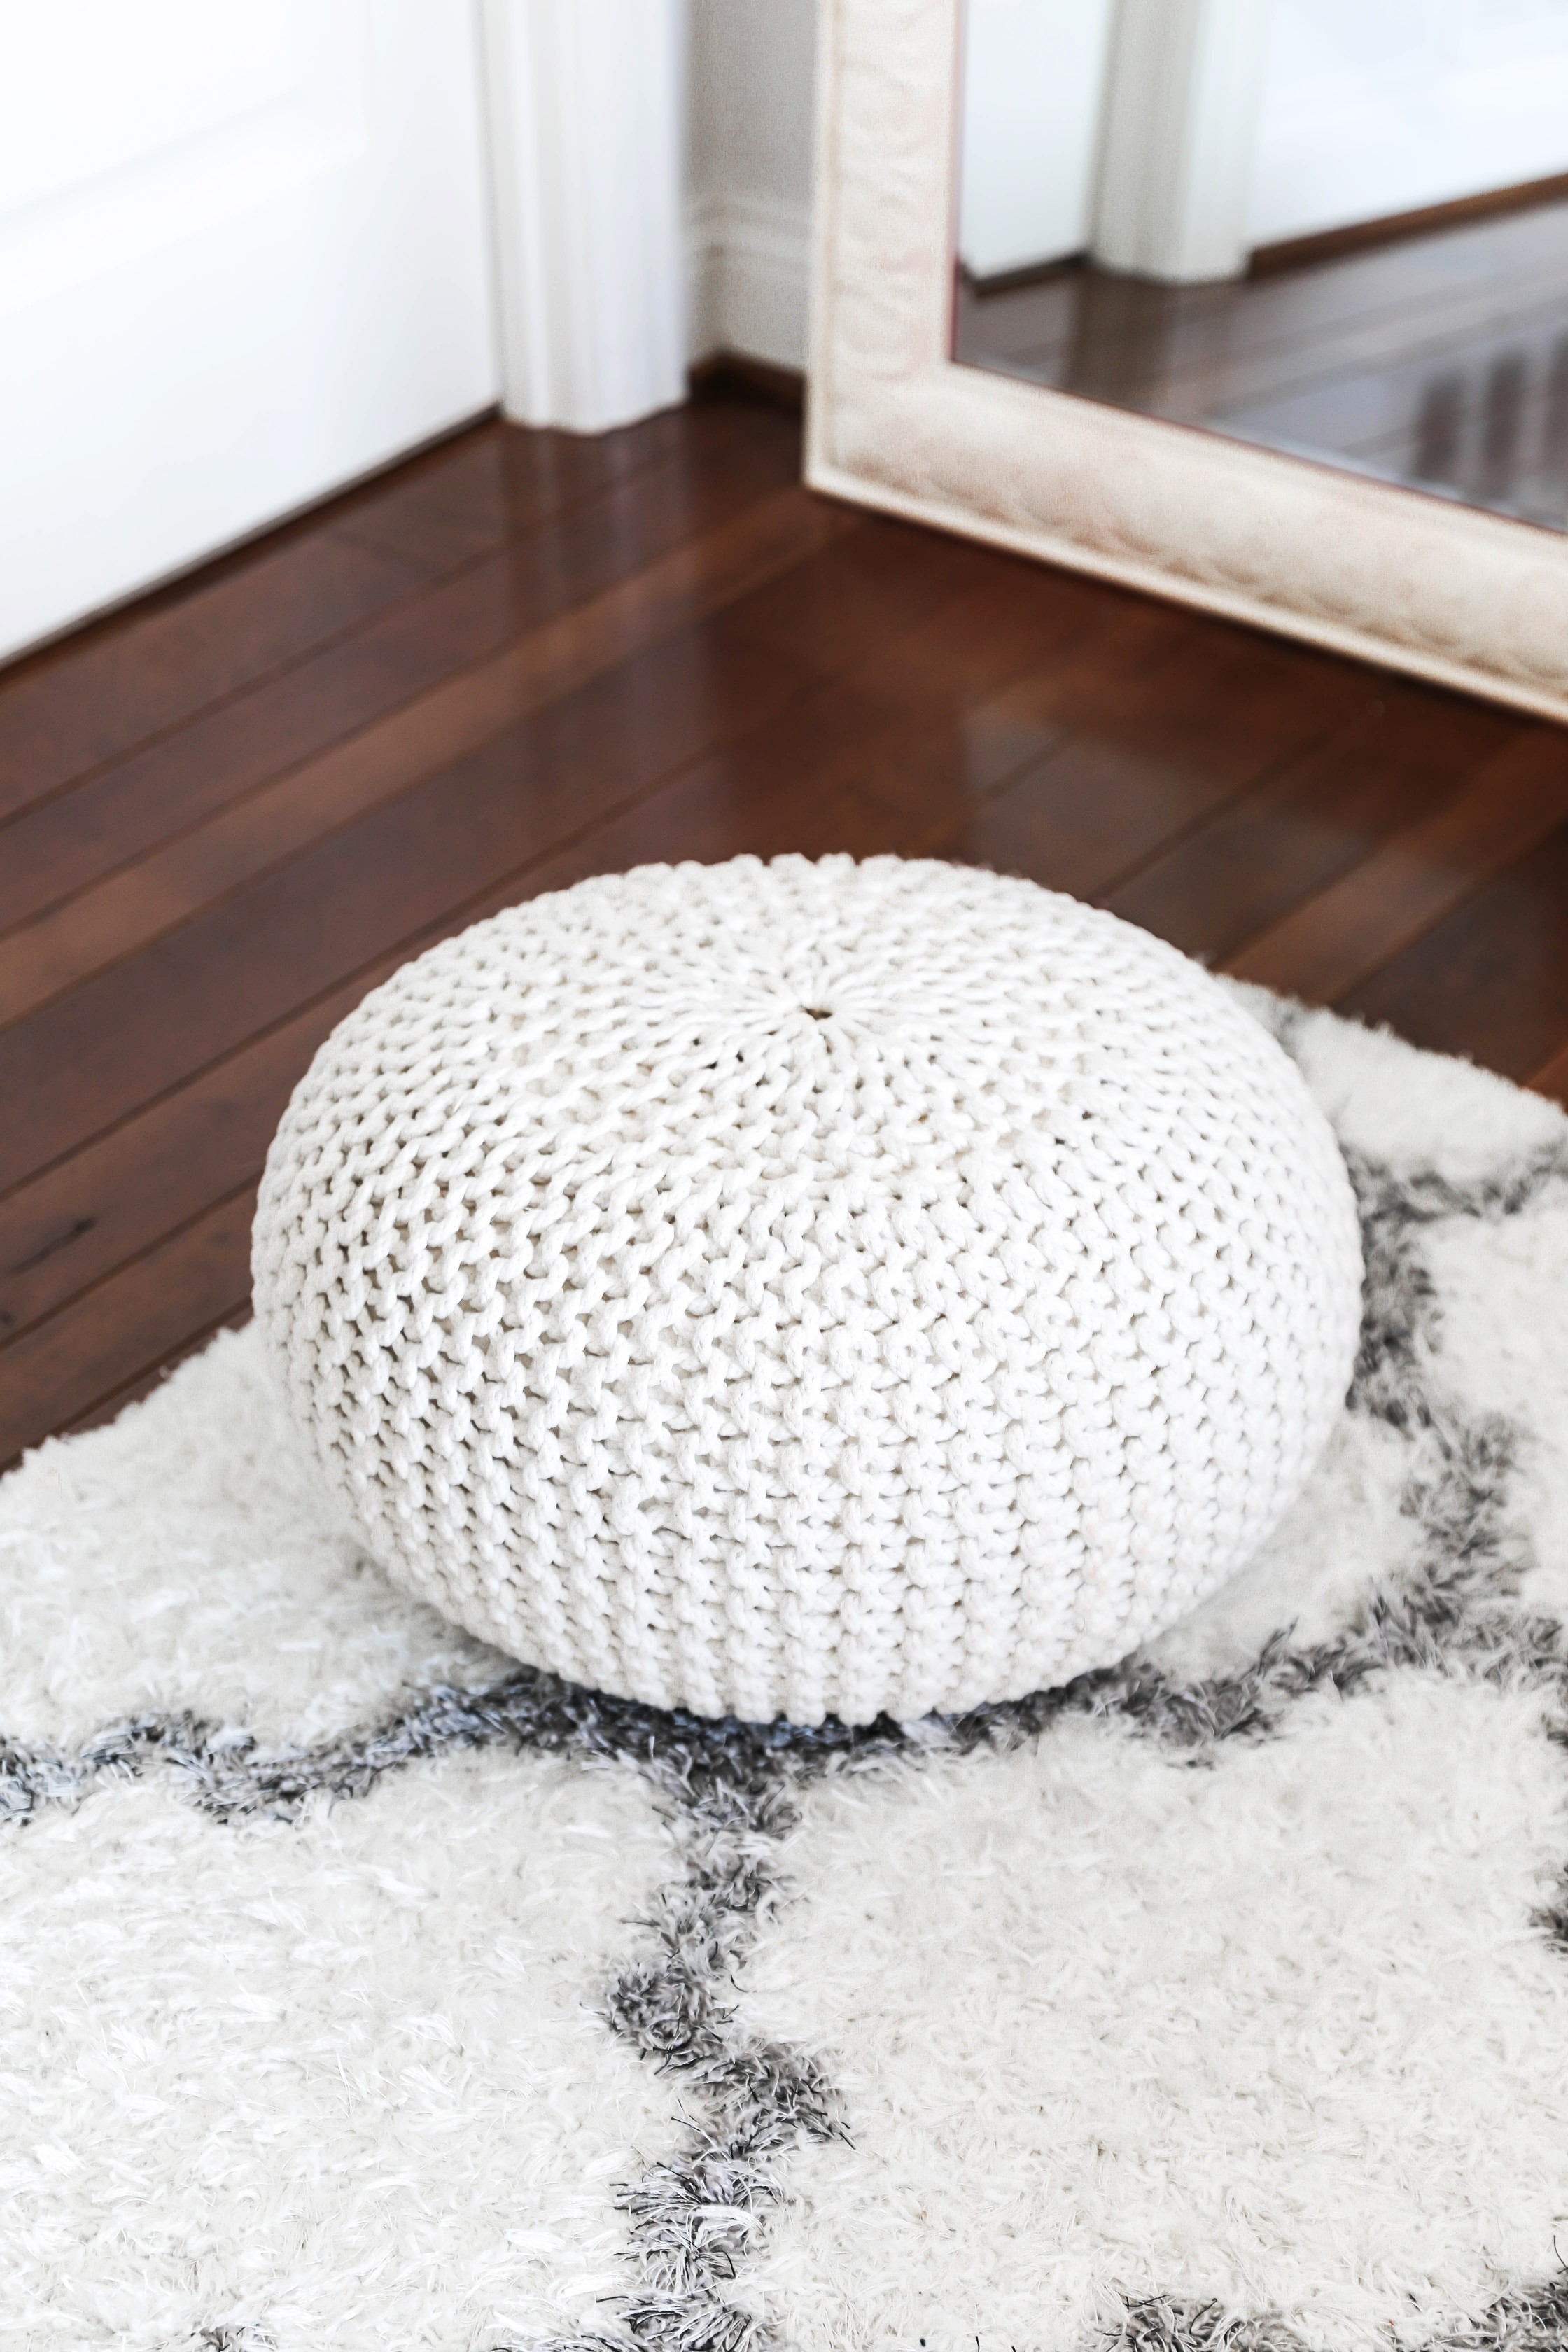 Amazon haul life hacks pouf knit decor boho lifestyle fashion blog daily dose of charm lauren lindmark